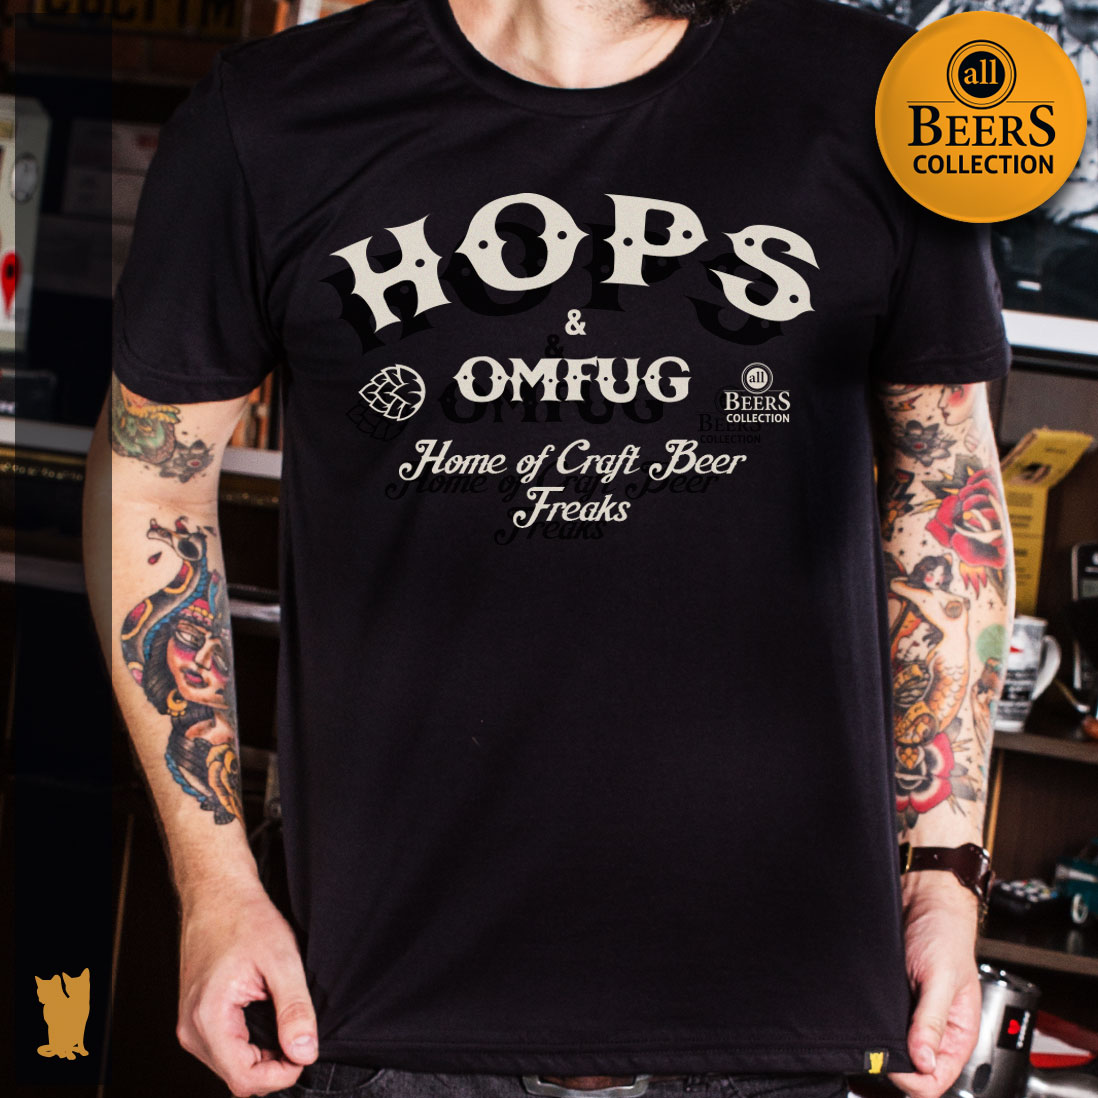 CAMISETA ALL BEERS - HOPS AND OMFUG